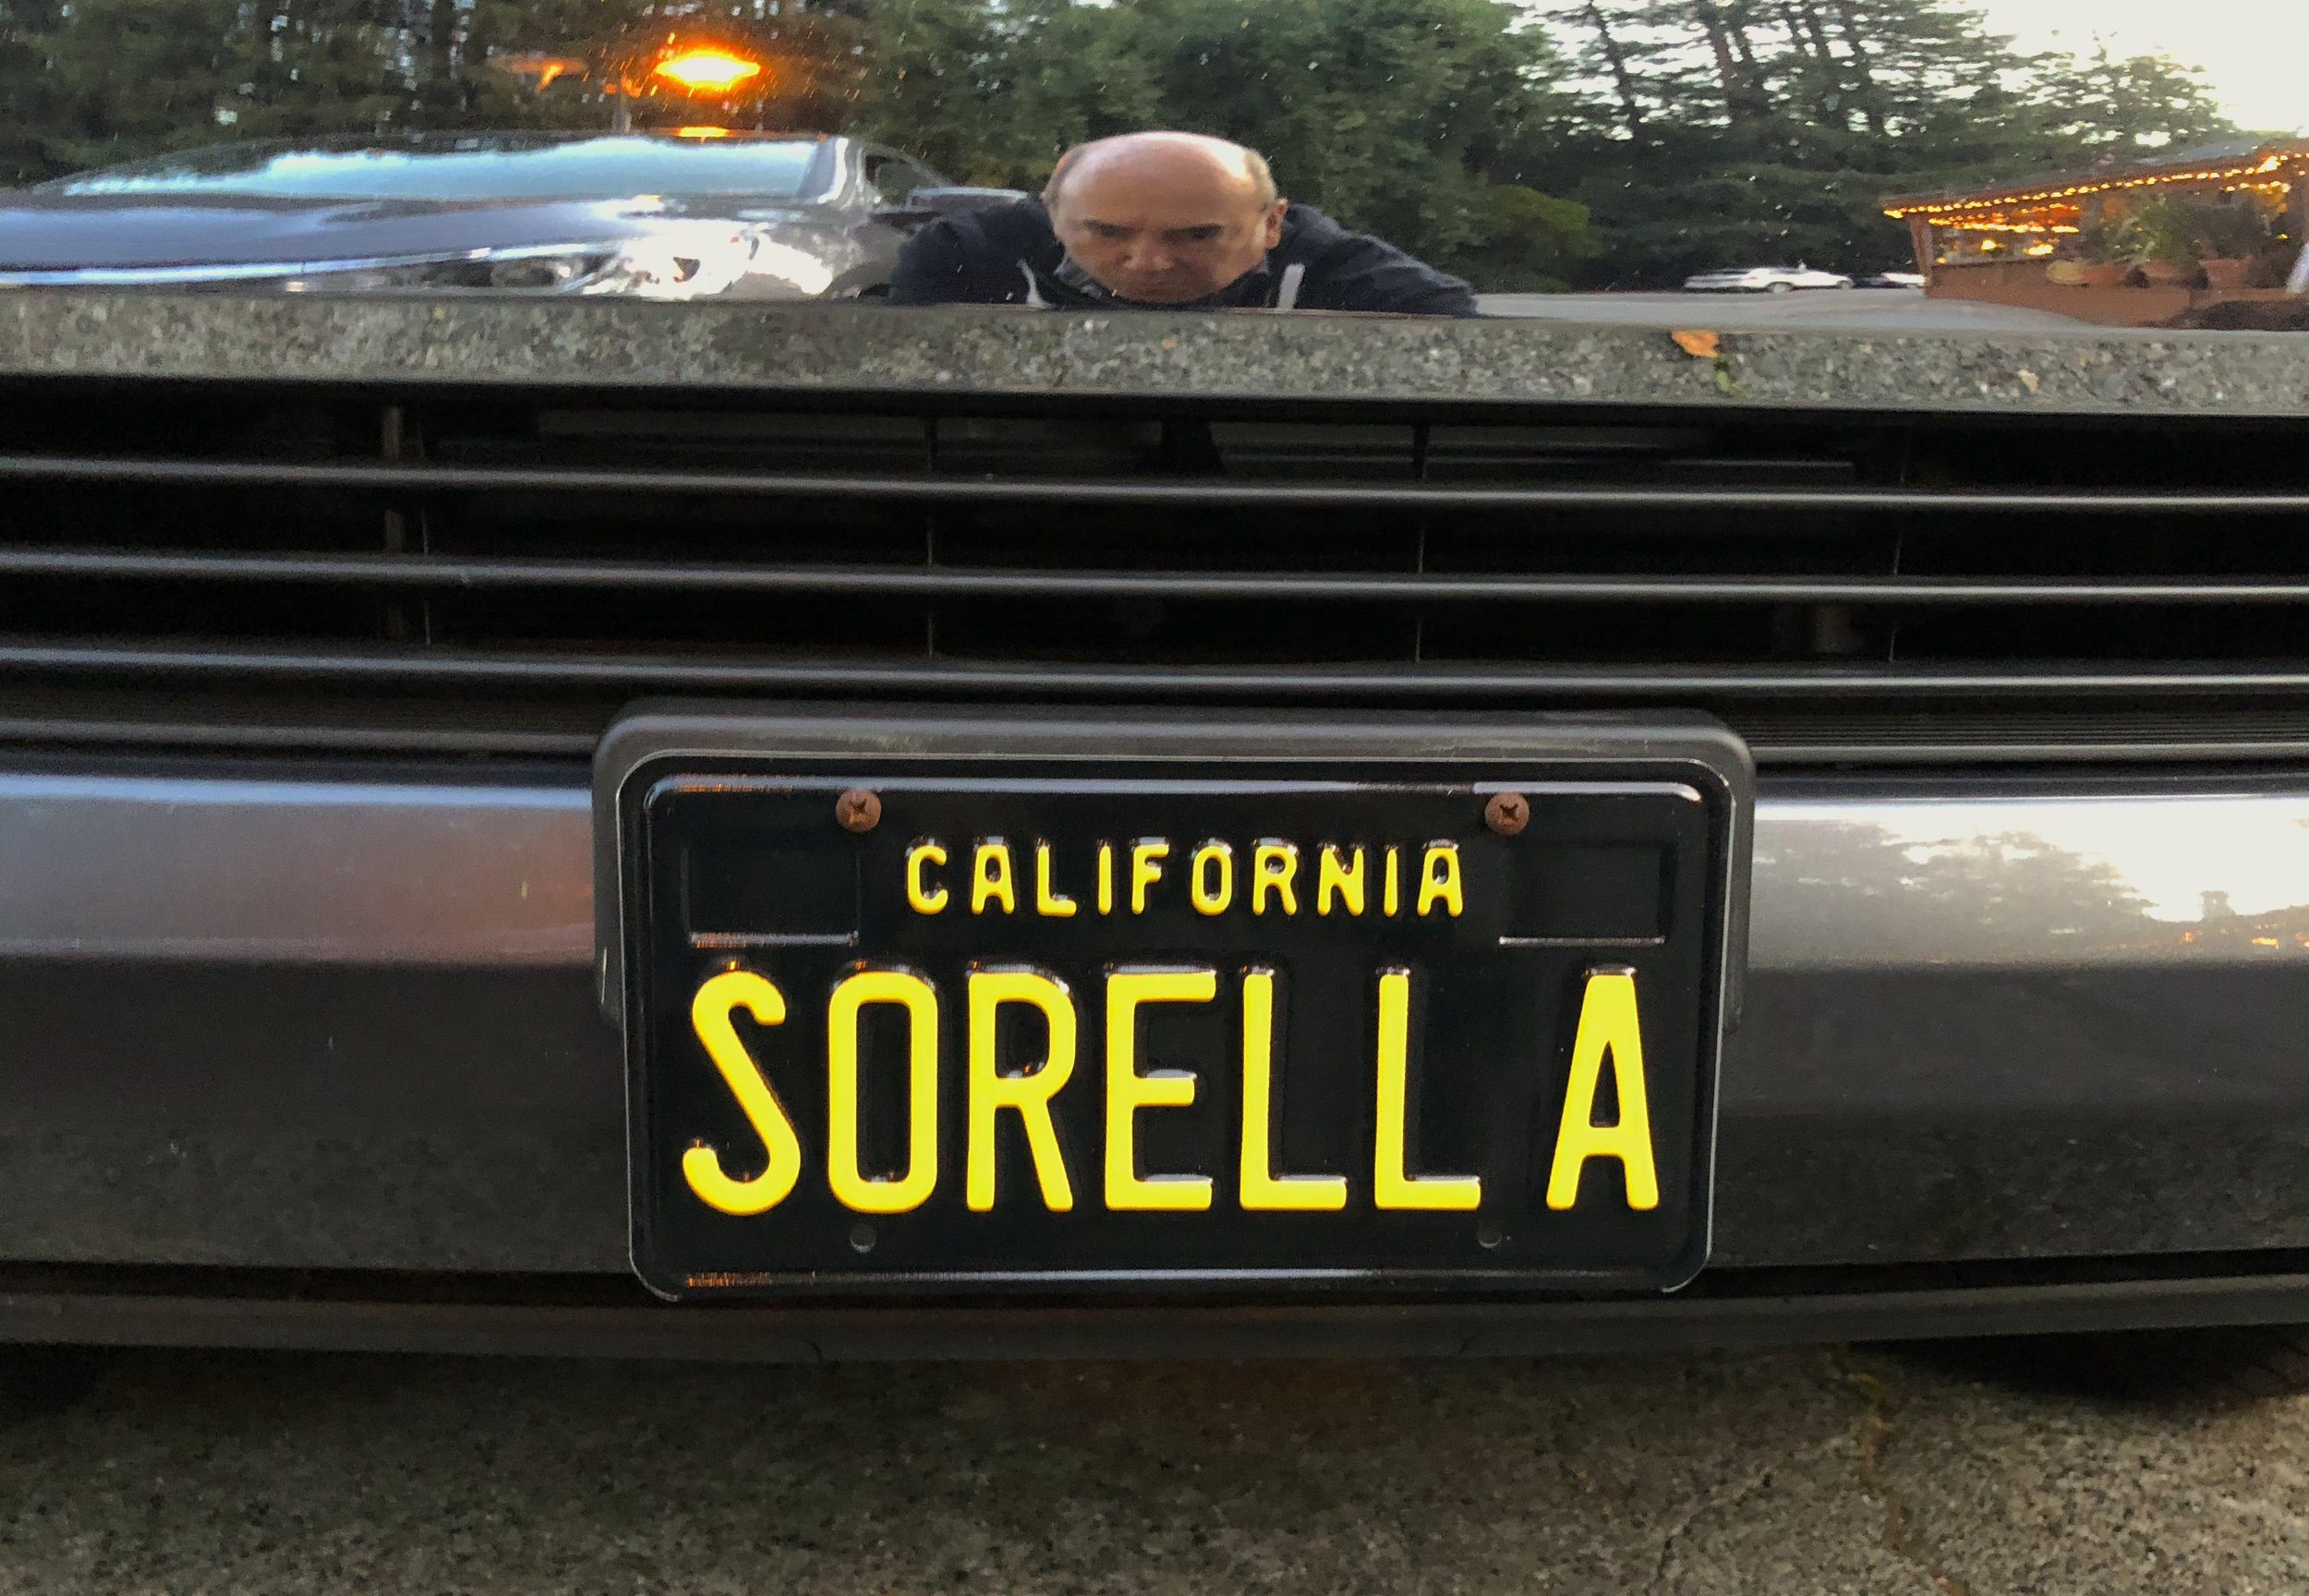 sorella license plate_edit.jpg